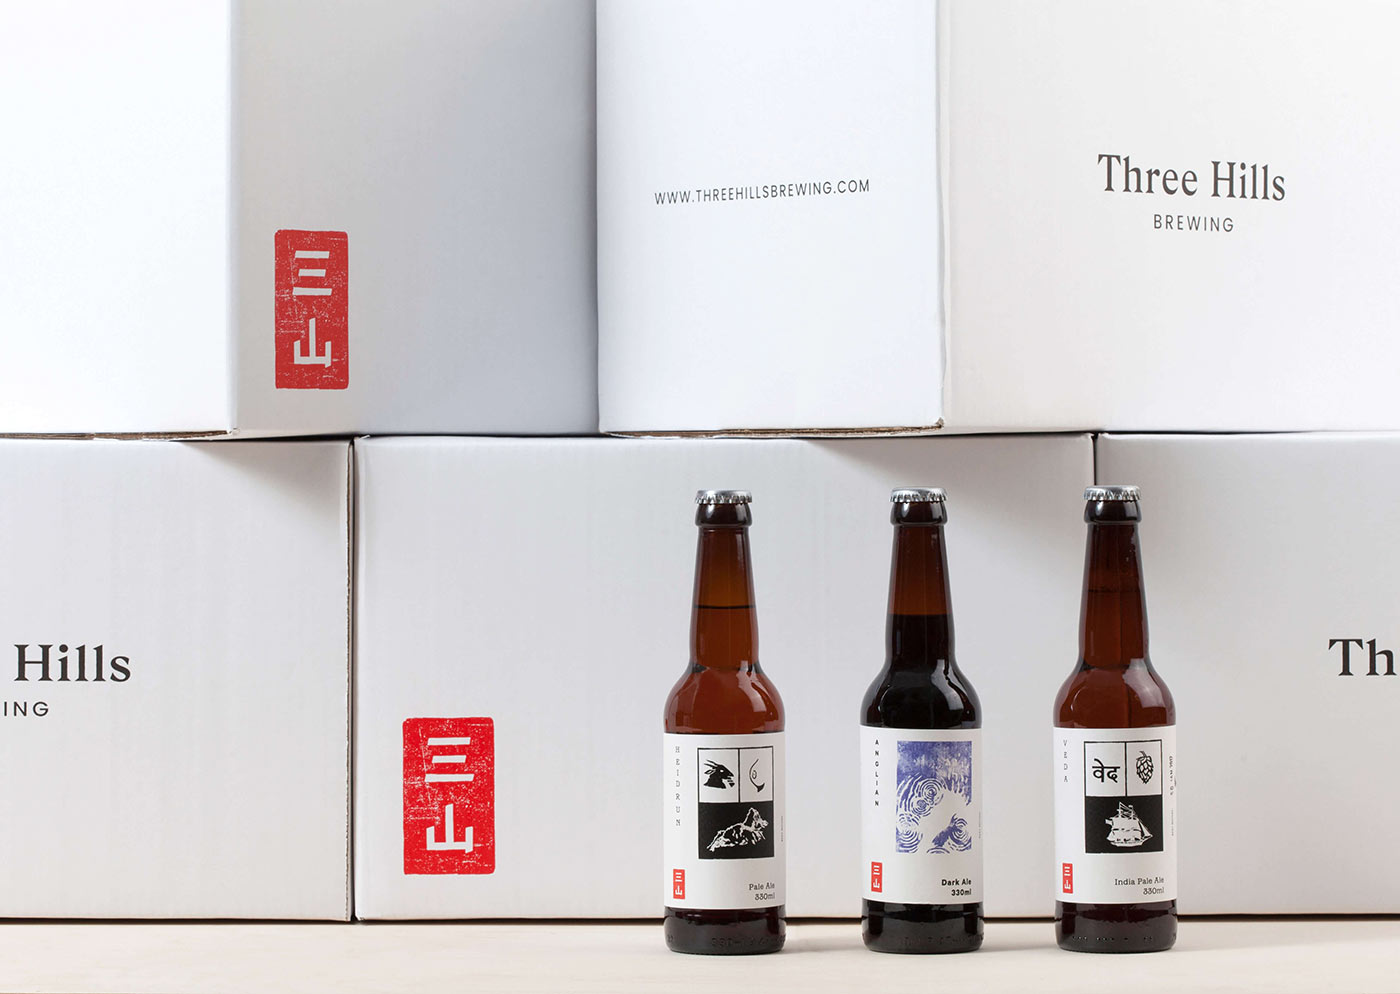 Three Hills Brewing identity